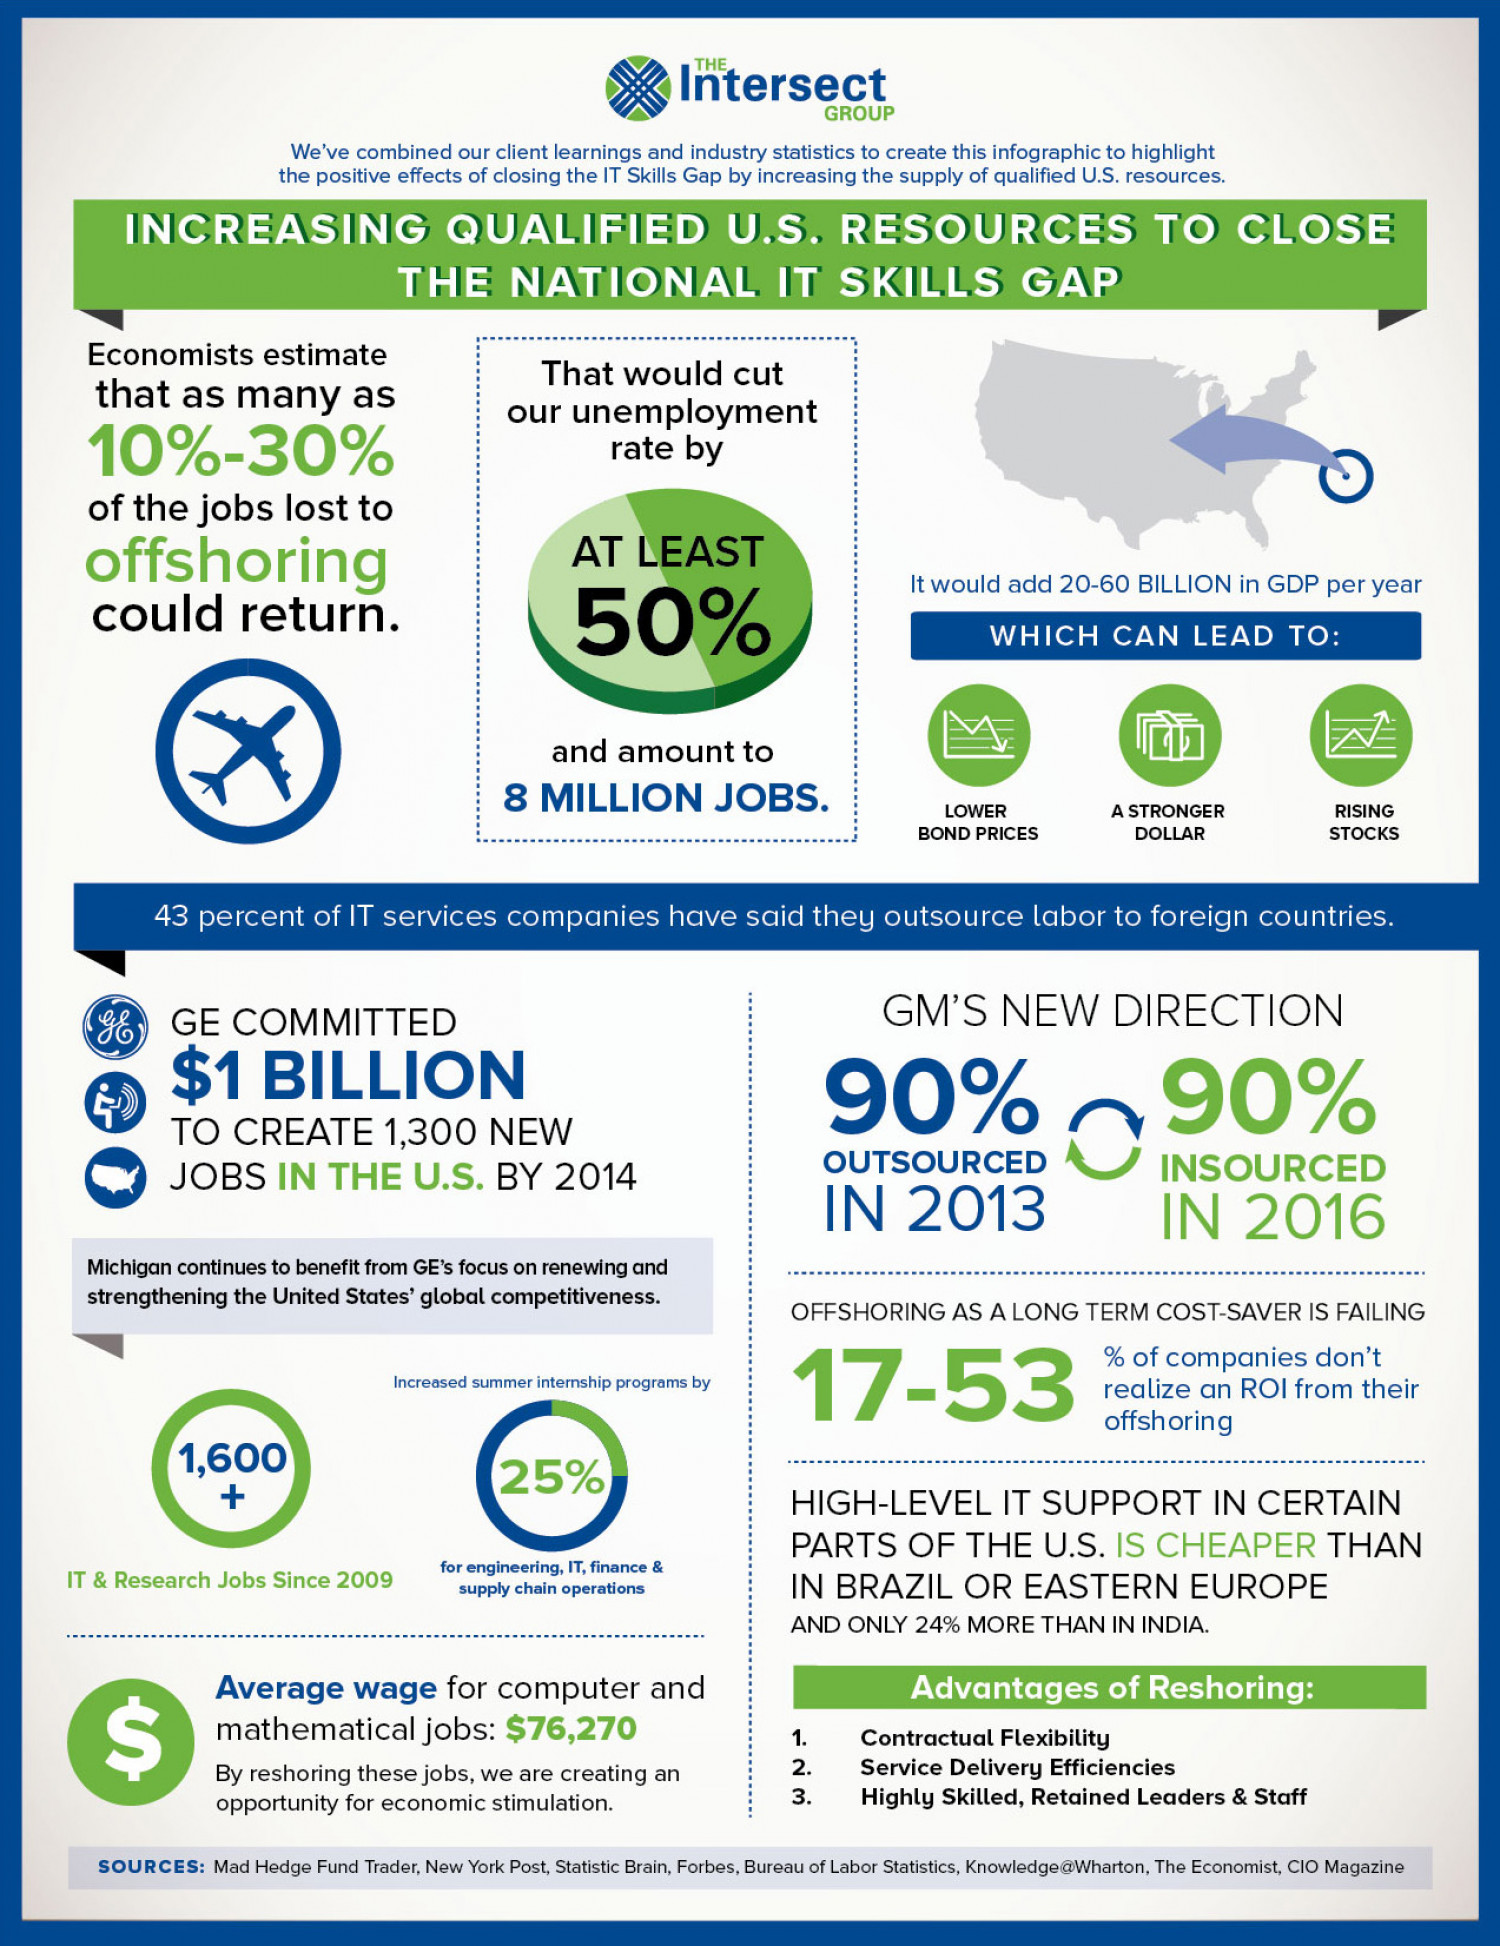 Closing the IT Skills Gap Infographic